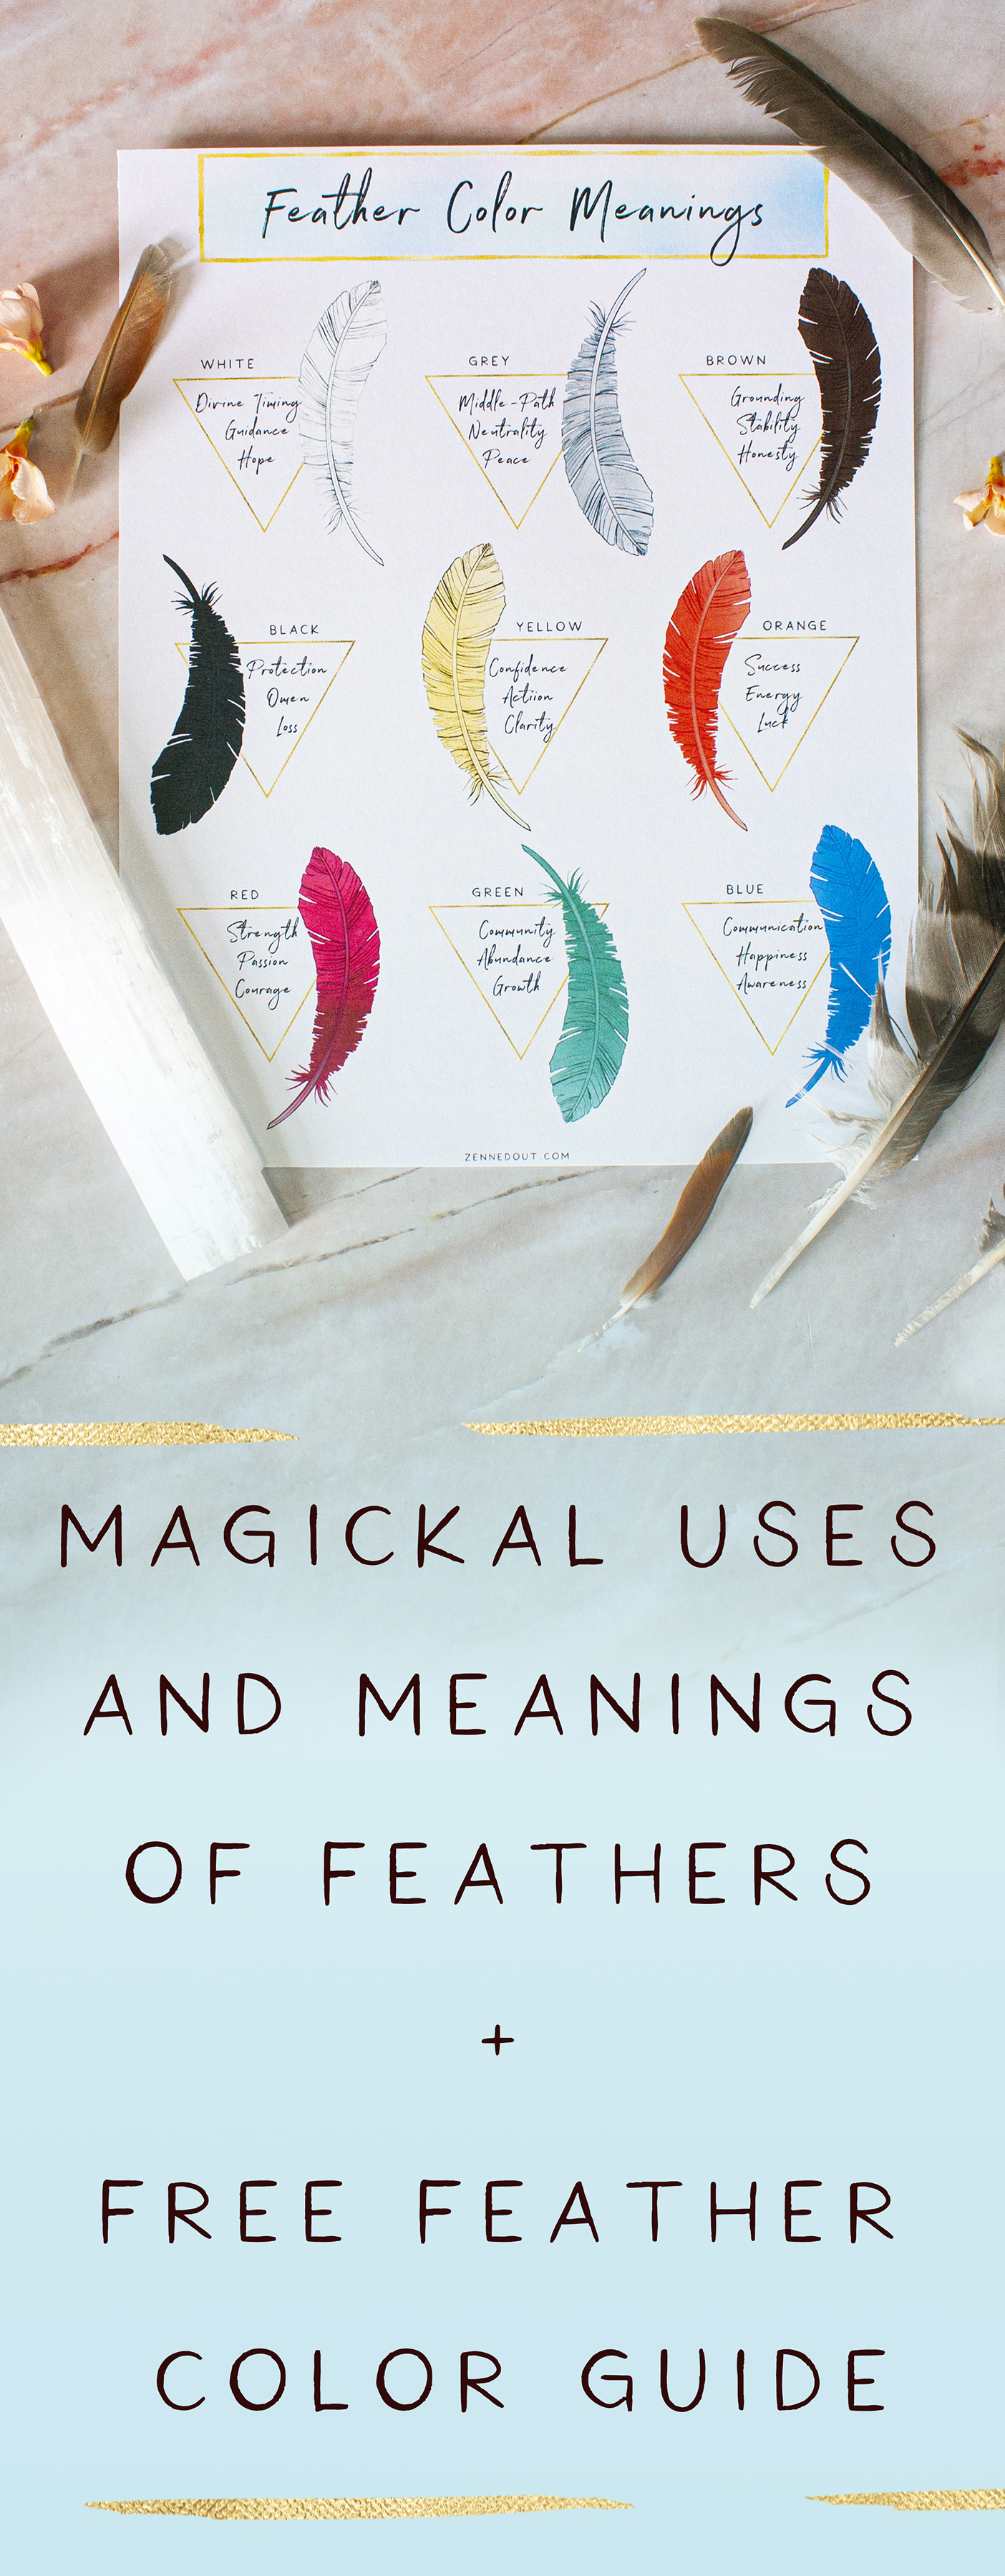 pic2-magickal-uses-and-meanings-of-feathers-feather-color-guide